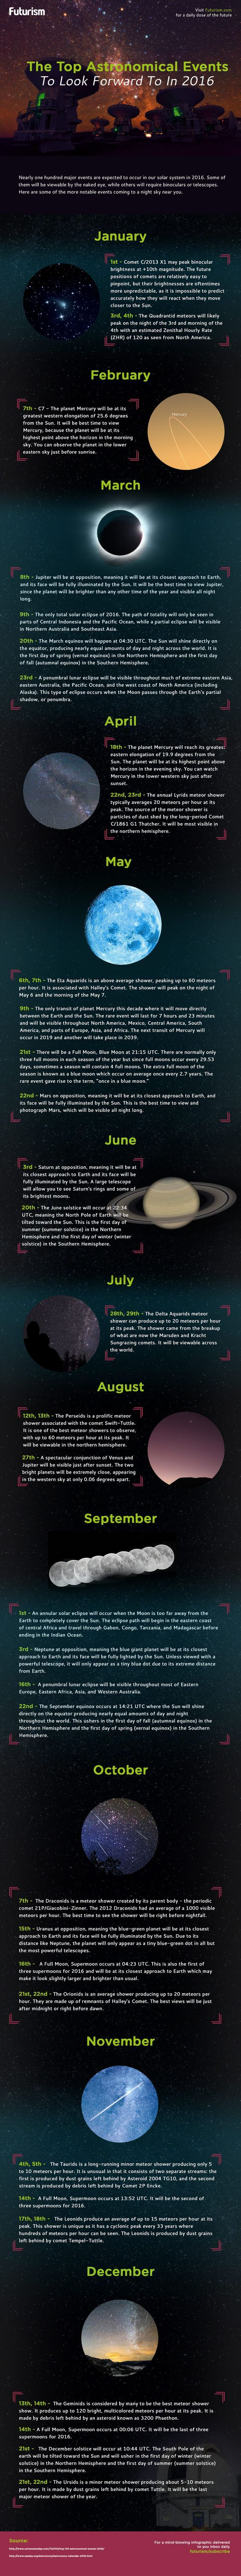 The biggest Astronomy events of 2016